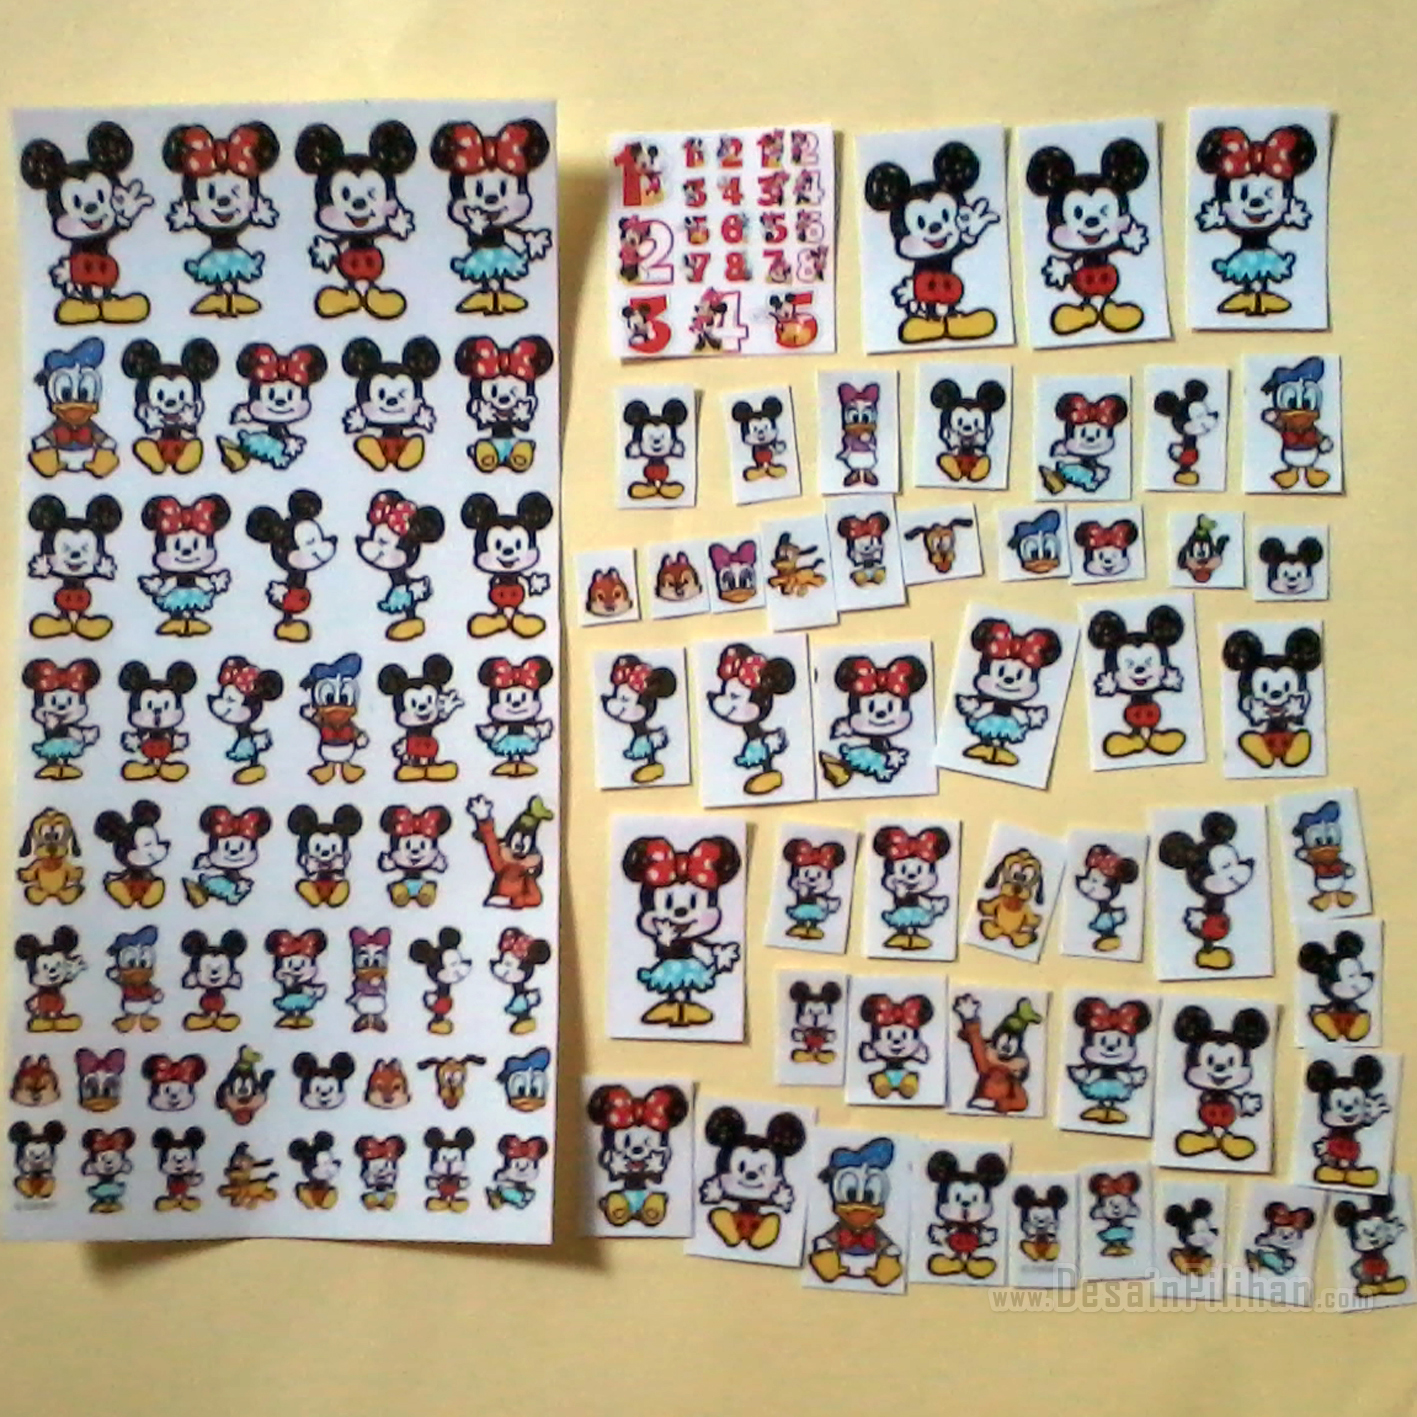 CUTTING STICKER TRANSPARAN CUSTOM, CUTTING STICKER MICKEY MINNIE MOUSE